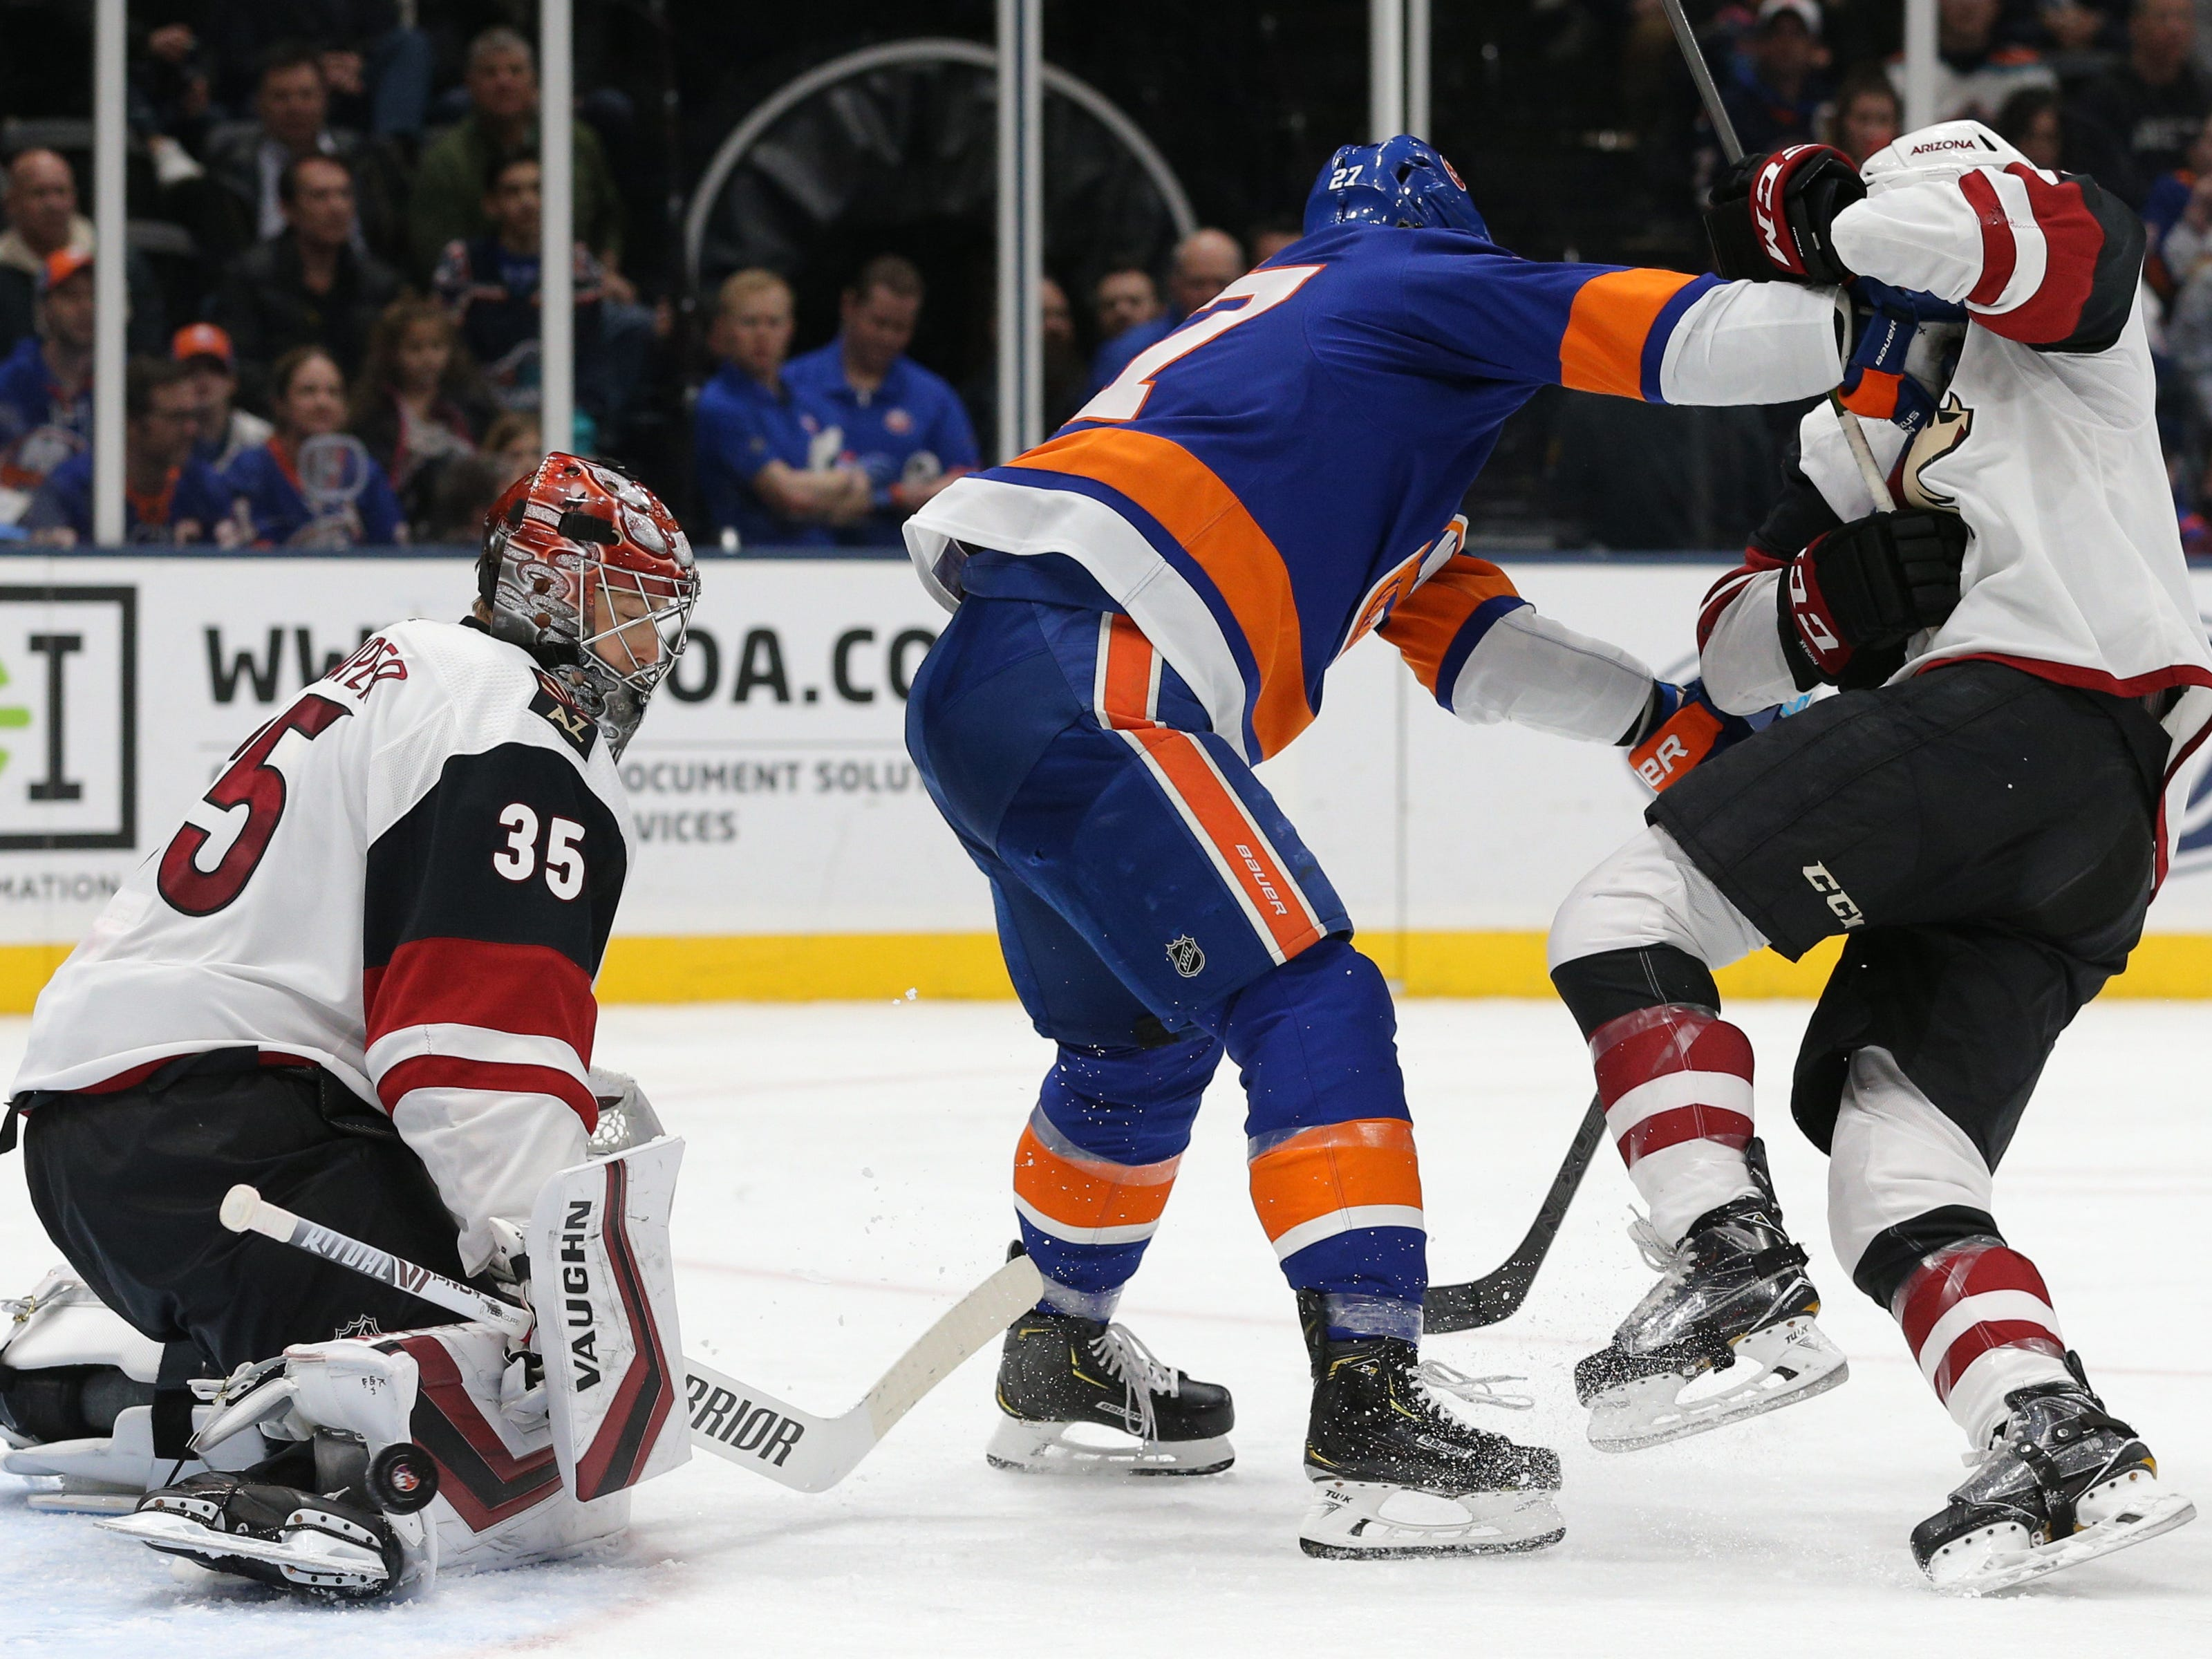 Mar 24, 2019; Uniondale, NY, USA; Arizona Coyotes goalie Darcy Kuemper (35) makes a save in front of New York Islanders left wing Anders Lee (27) during the second period at Nassau Veterans Memorial Coliseum. Mandatory Credit: Brad Penner-USA TODAY Sports